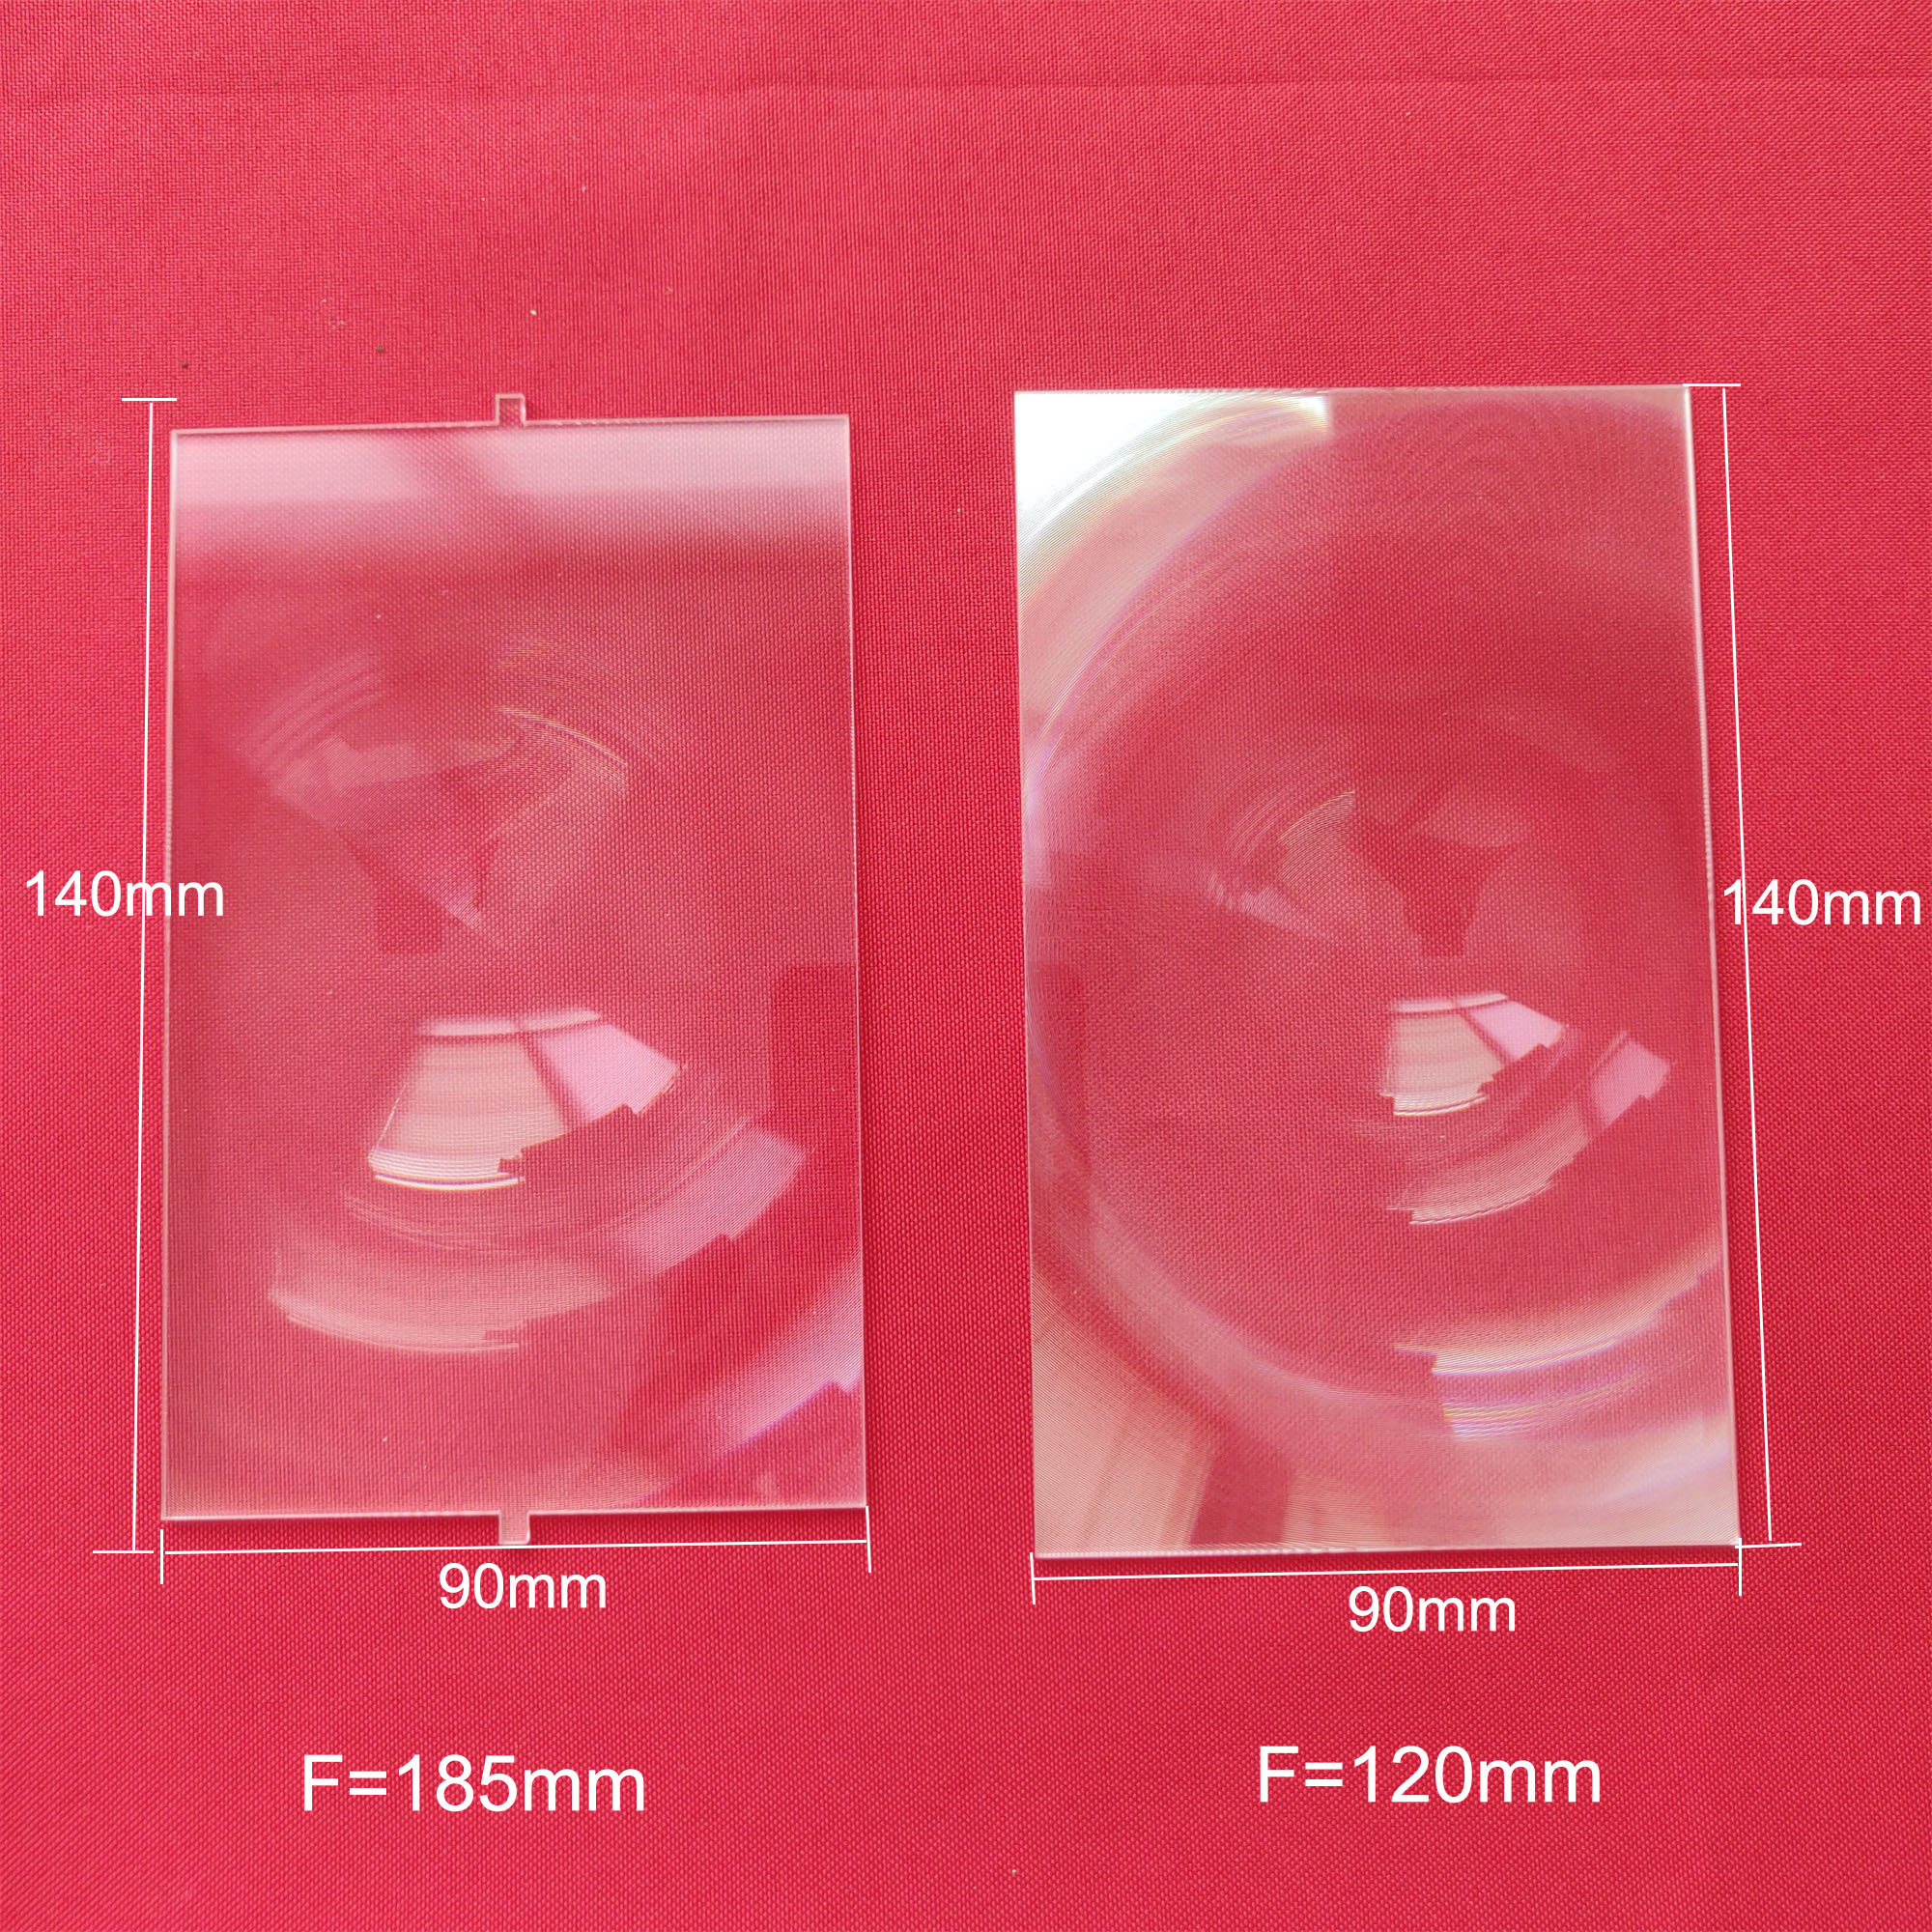 140*90 F185 /120 Fresnel Lens For 5.8 Inch DIY Projector Lens Projector Dedicated Mobile Phone / FPV Video Glasse